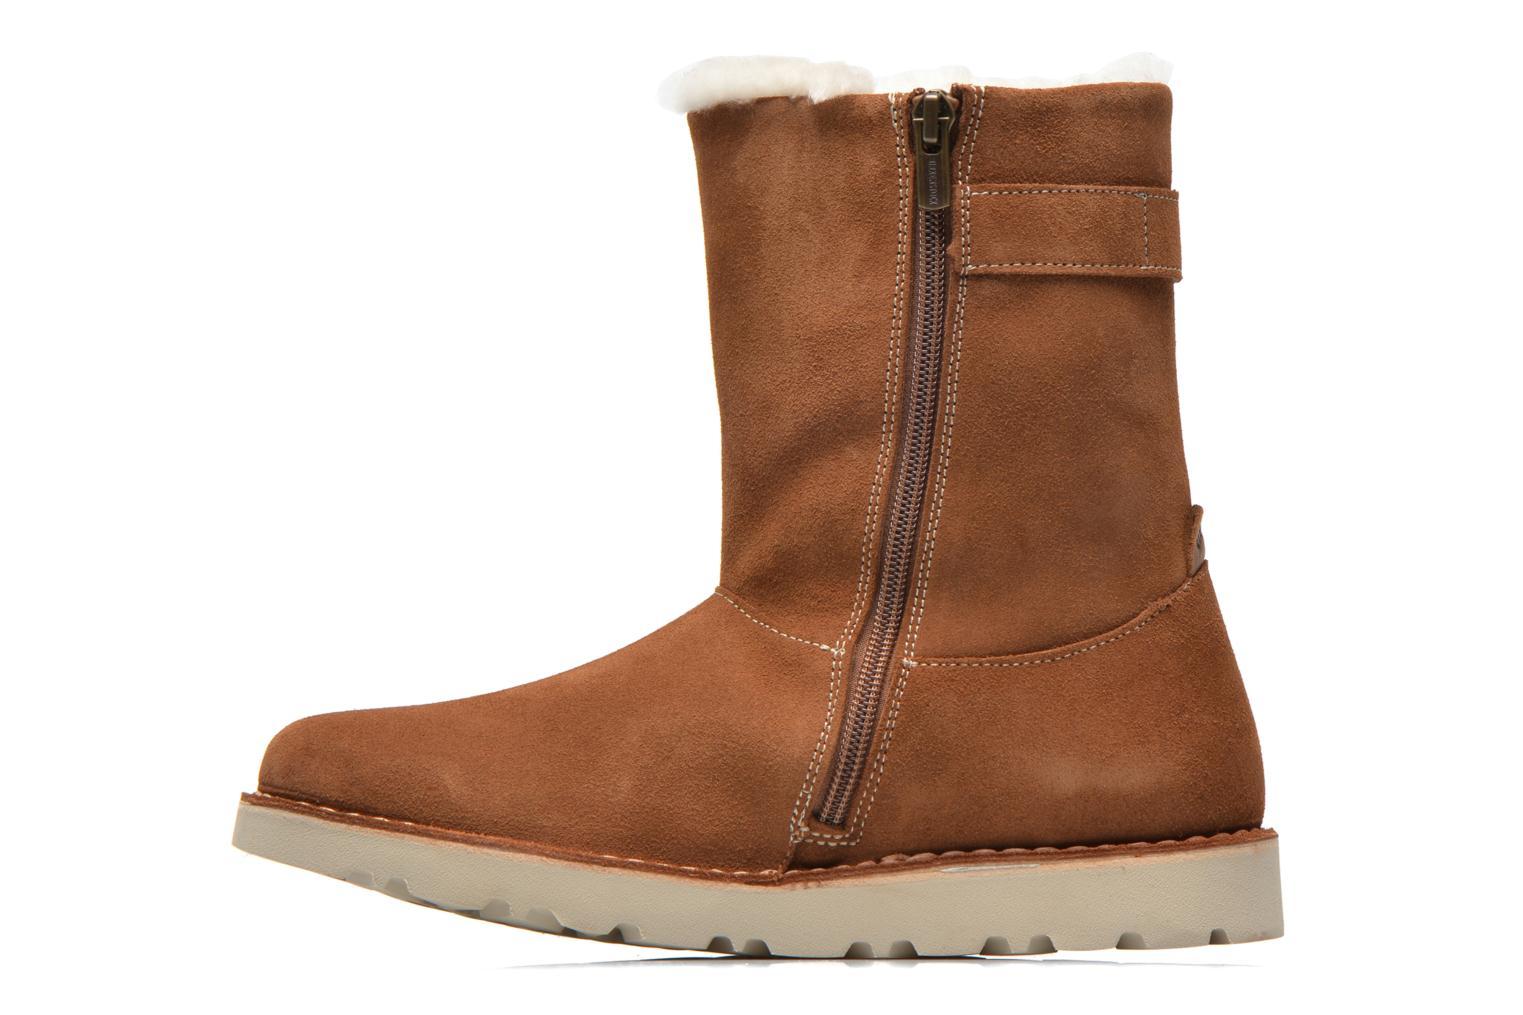 Bottines et boots Birkenstock Westford Marron vue face